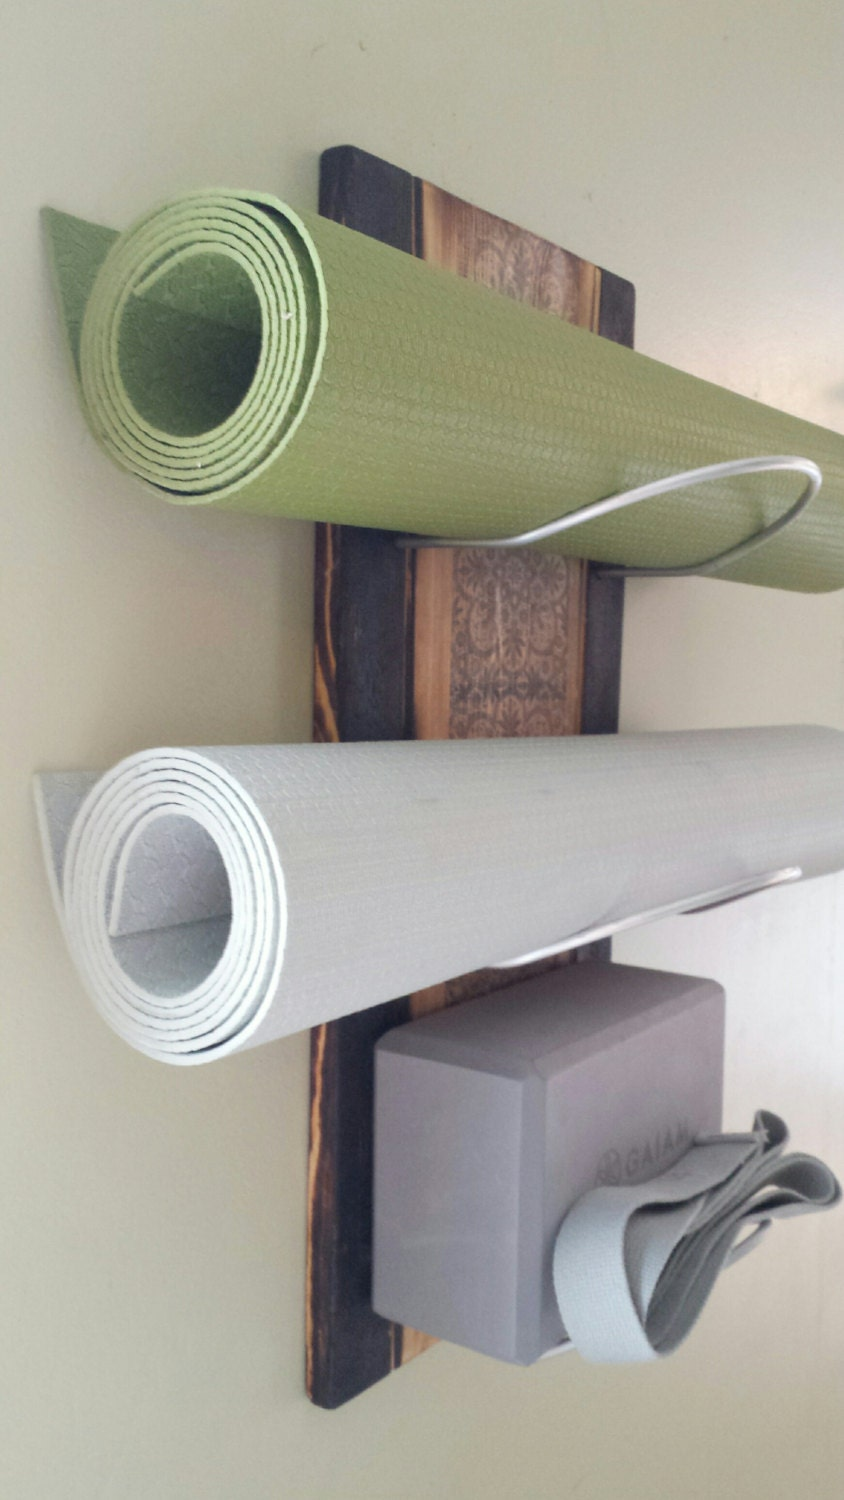 3 Tier Cobalt Ash Ii Wall Mounted Yoga Mat Holder Yoga